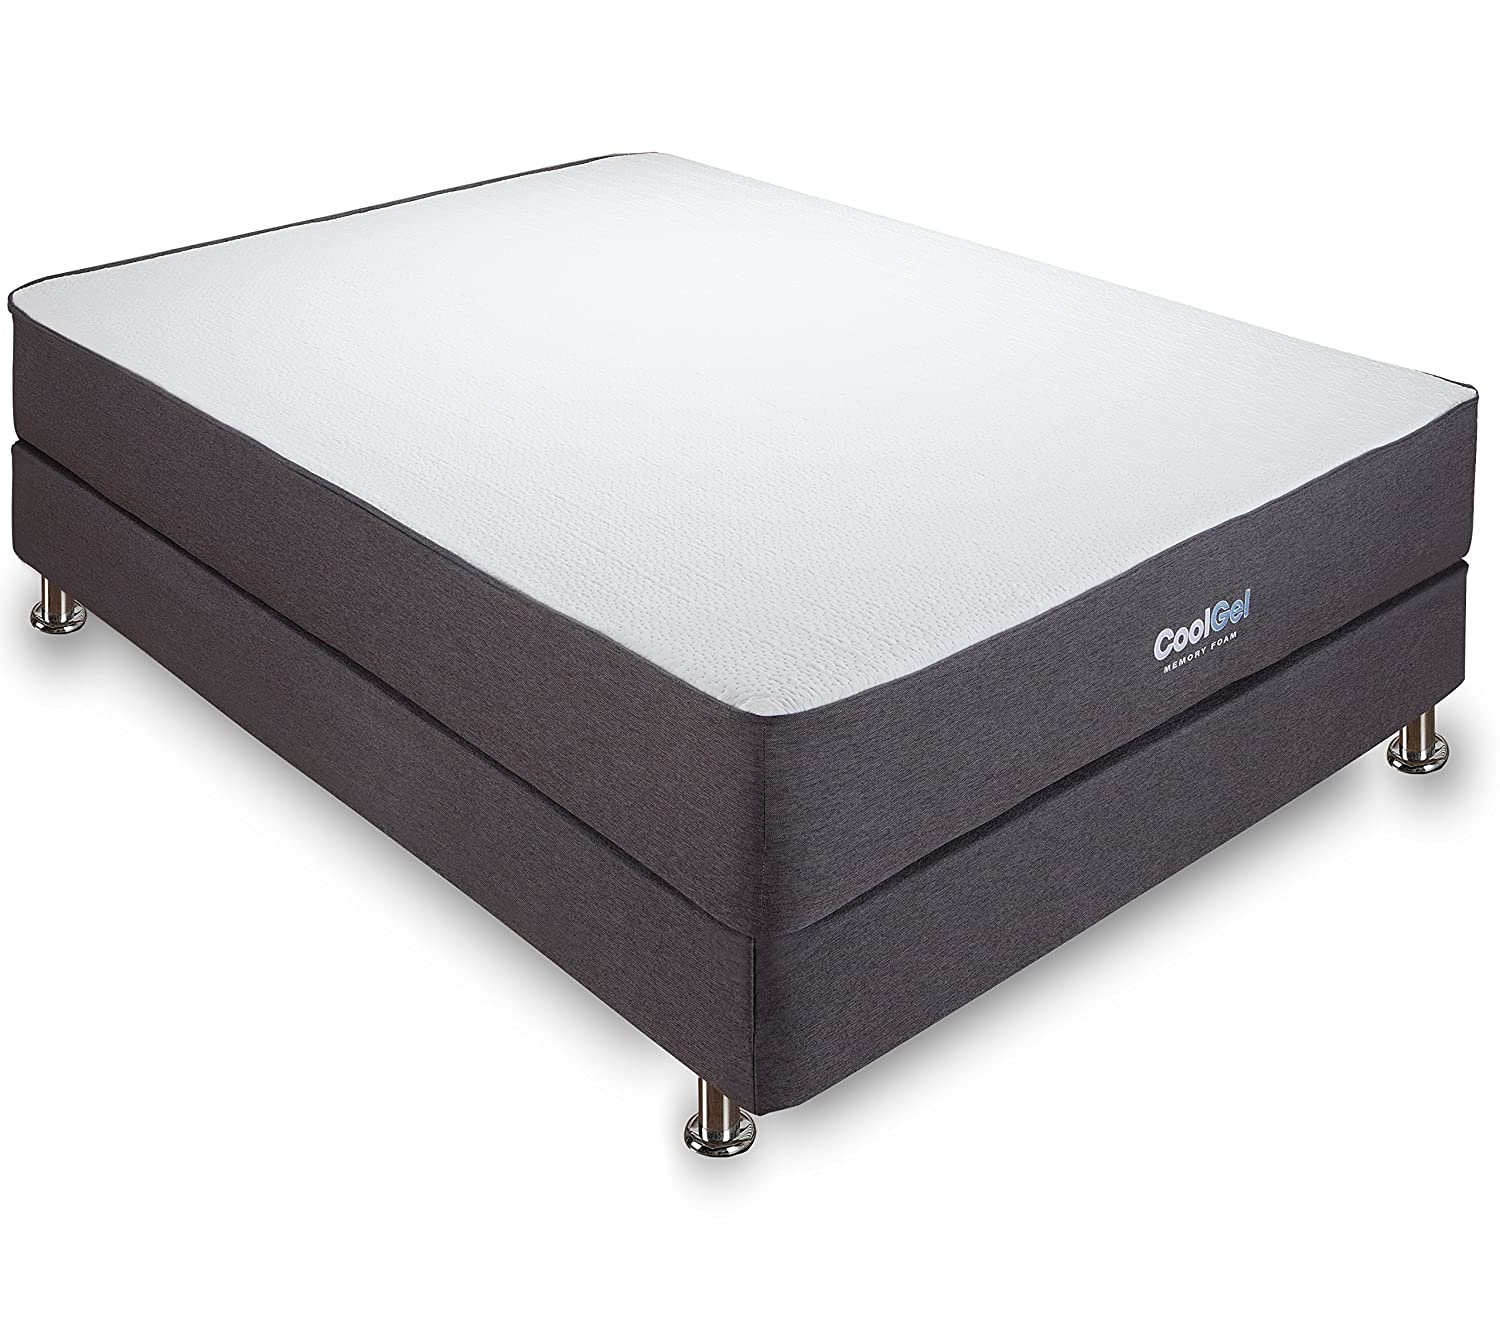 classic brands 105 inch cool gel ventilated memory foam mattress queen